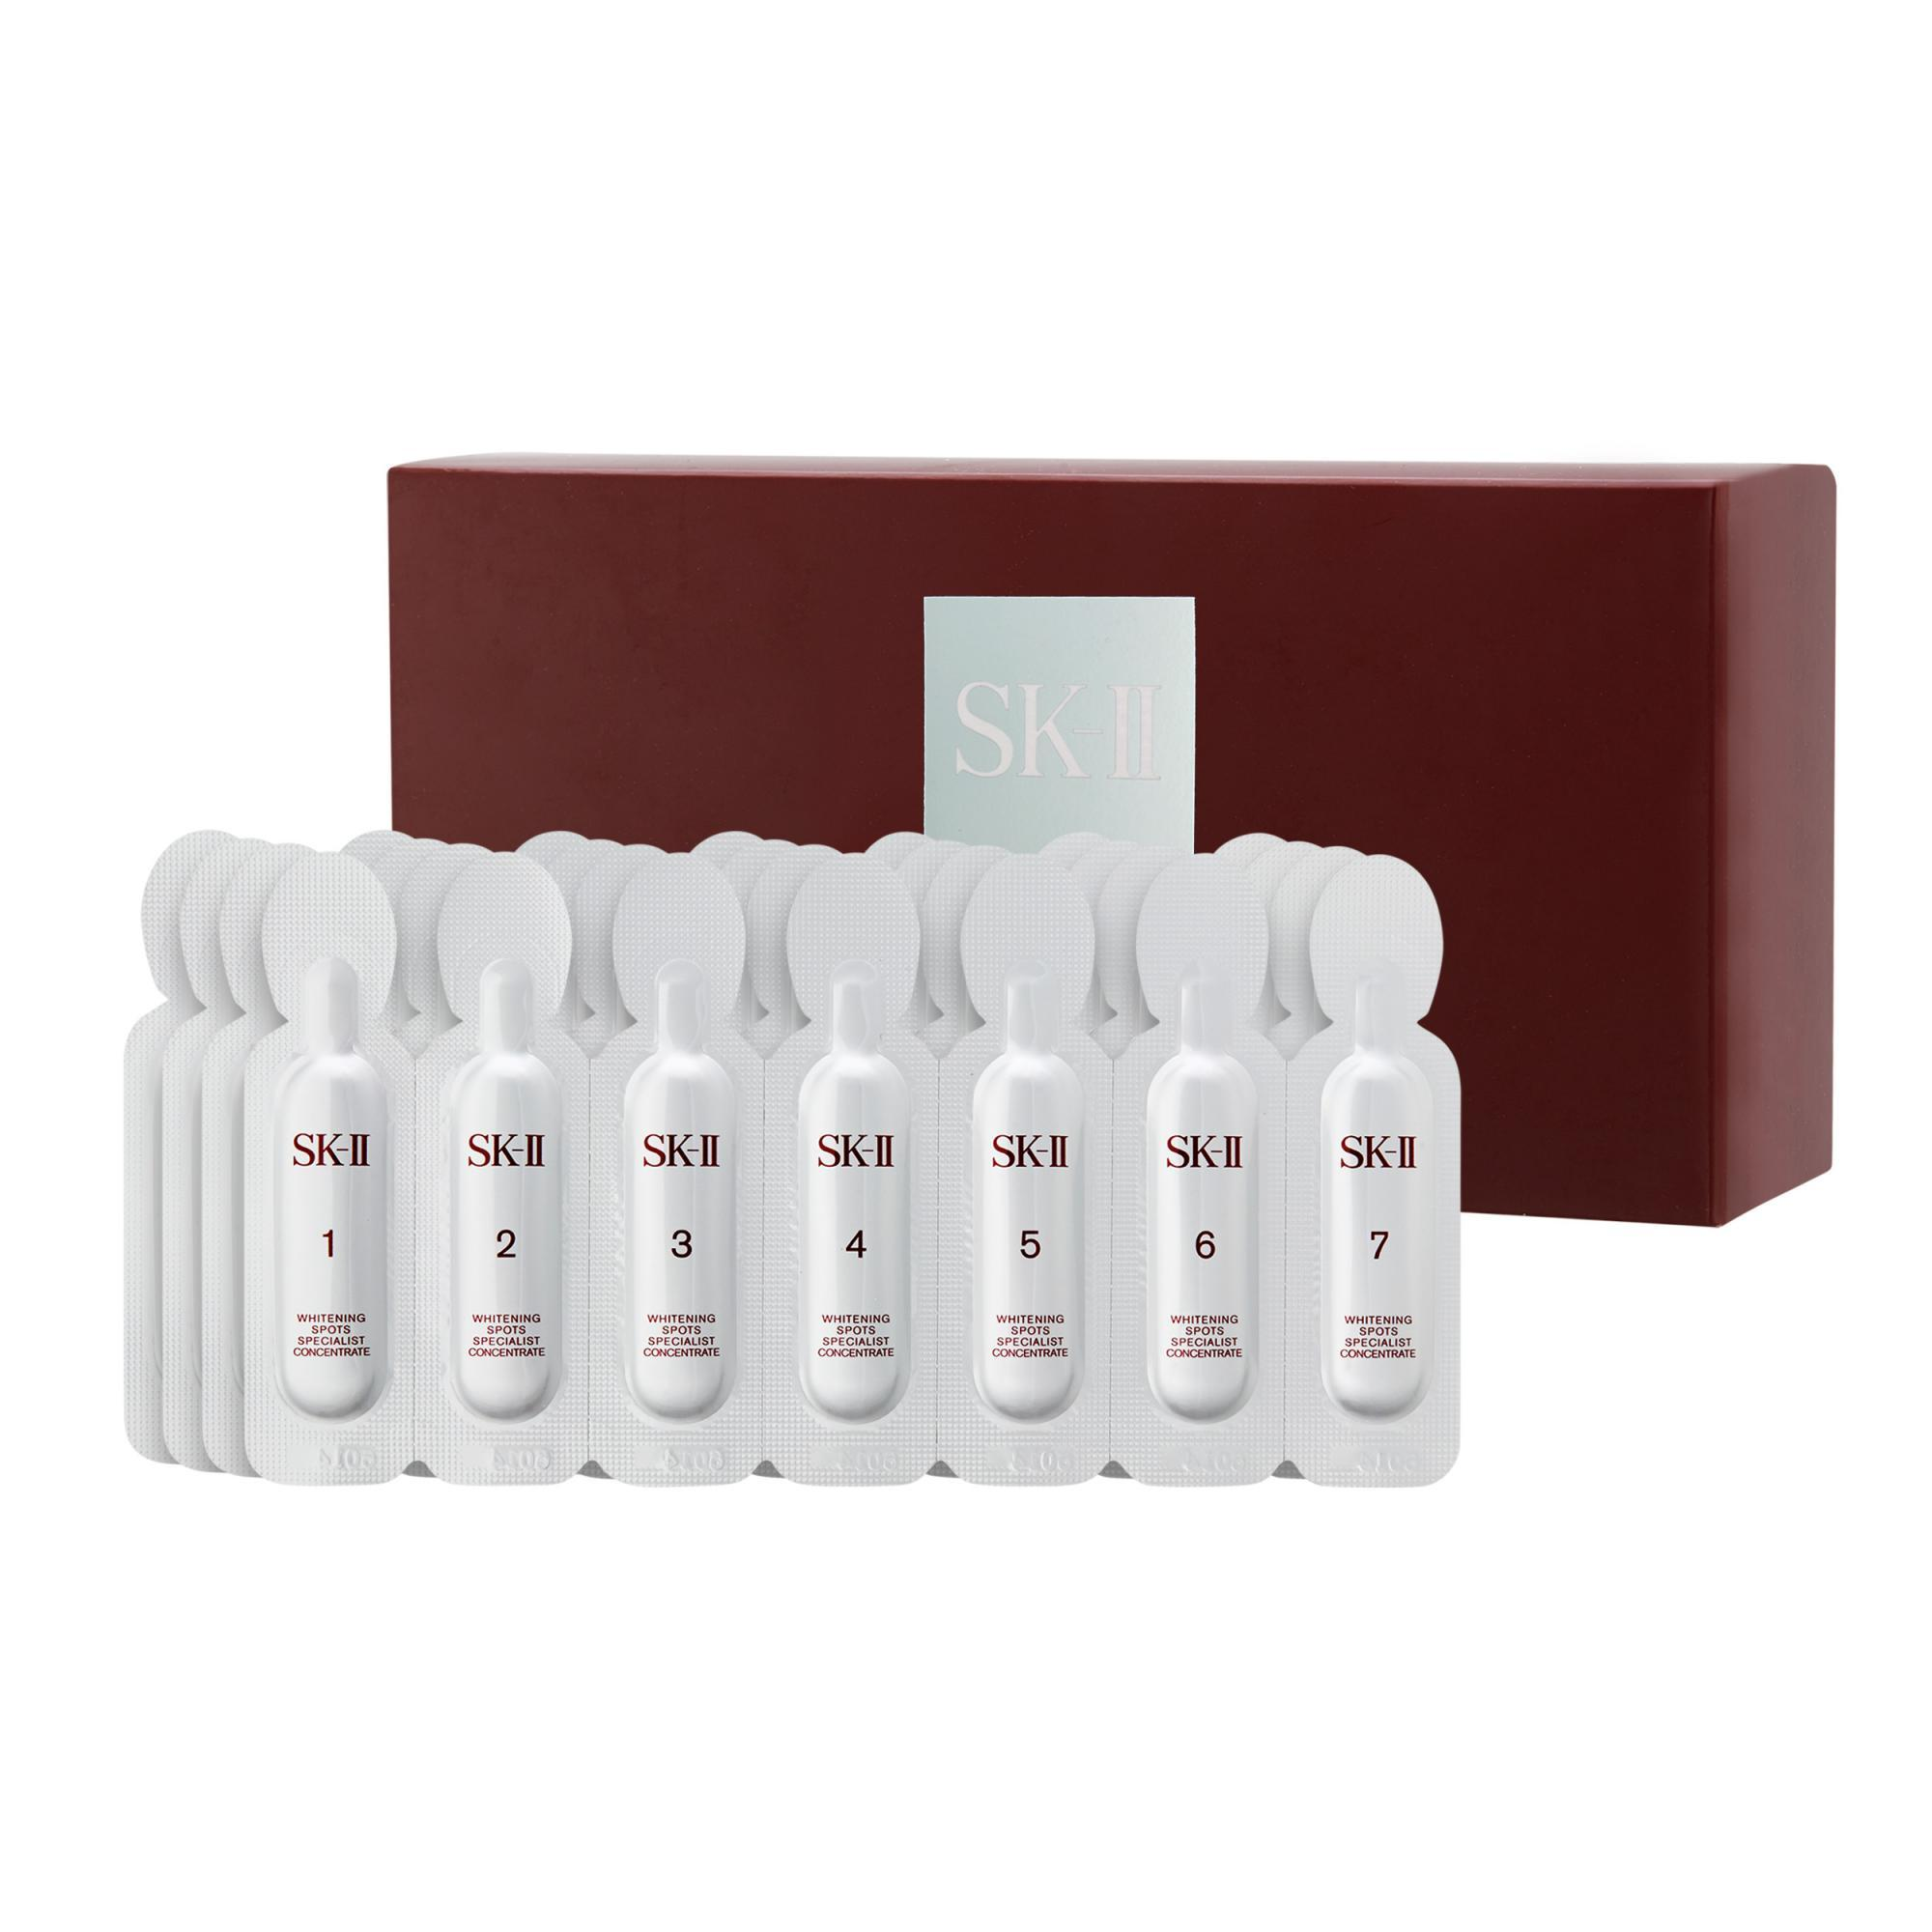 Cheap Sk Ii 28 Day Essence Treatment Whitening Spots Specialist Concentrate 1Set 28Pcs Intl